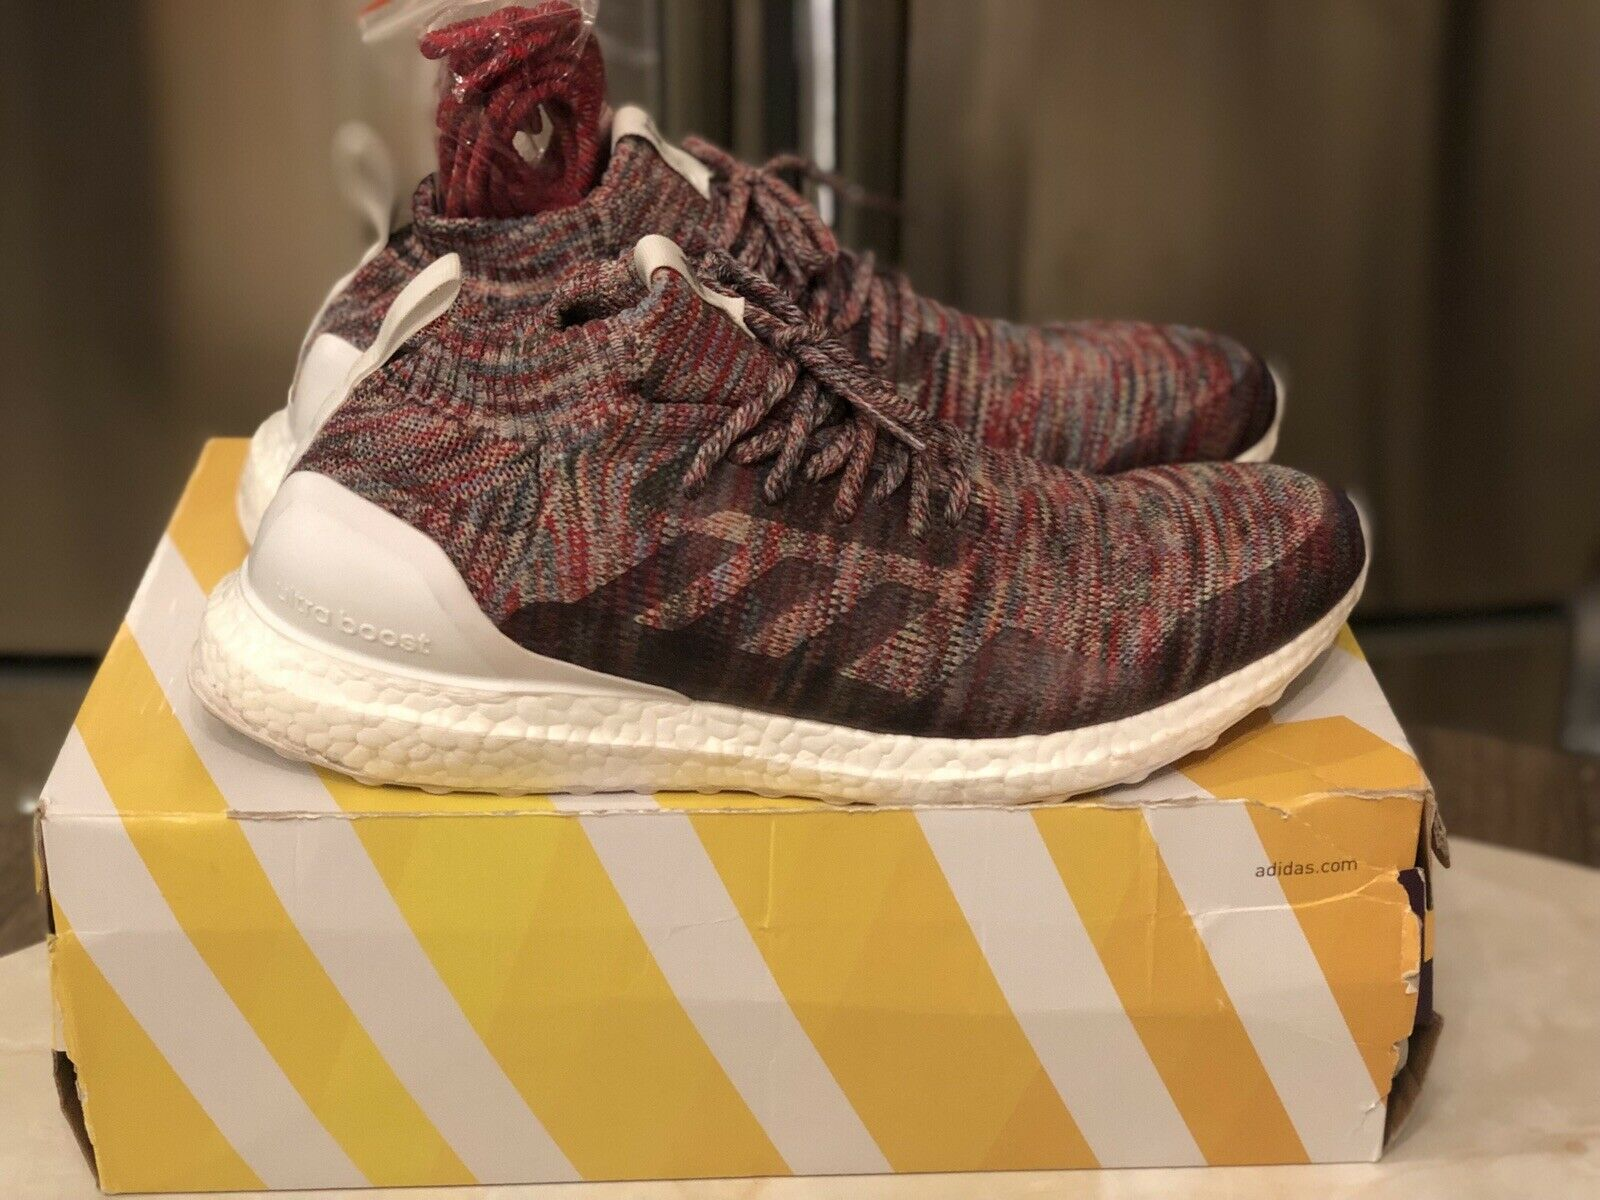 Kith X Adidas Ultra Boost Mid Aspen Size 12 Men's shoes